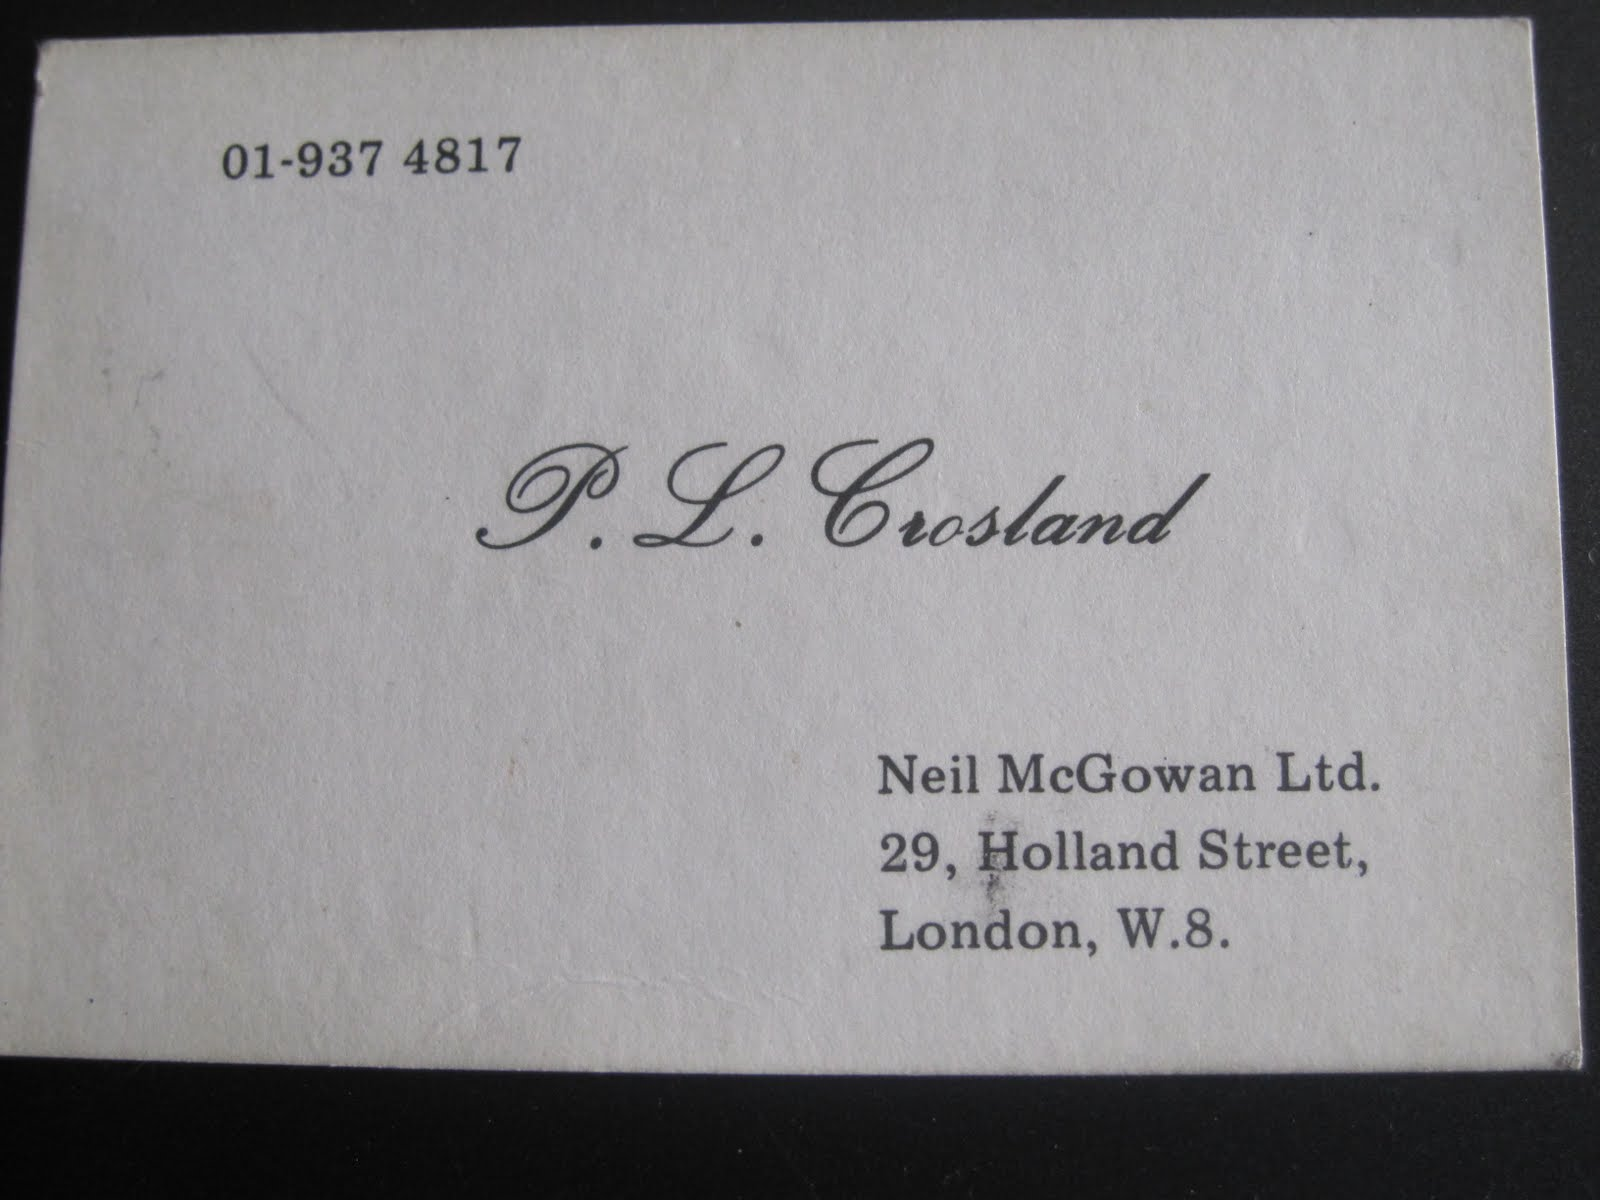 Family affairs july 2010 one day i will write the story of crosland and pickstone ltd for now here ia a copy photo of dads business card when he lived in london midweek and ran reheart Choice Image